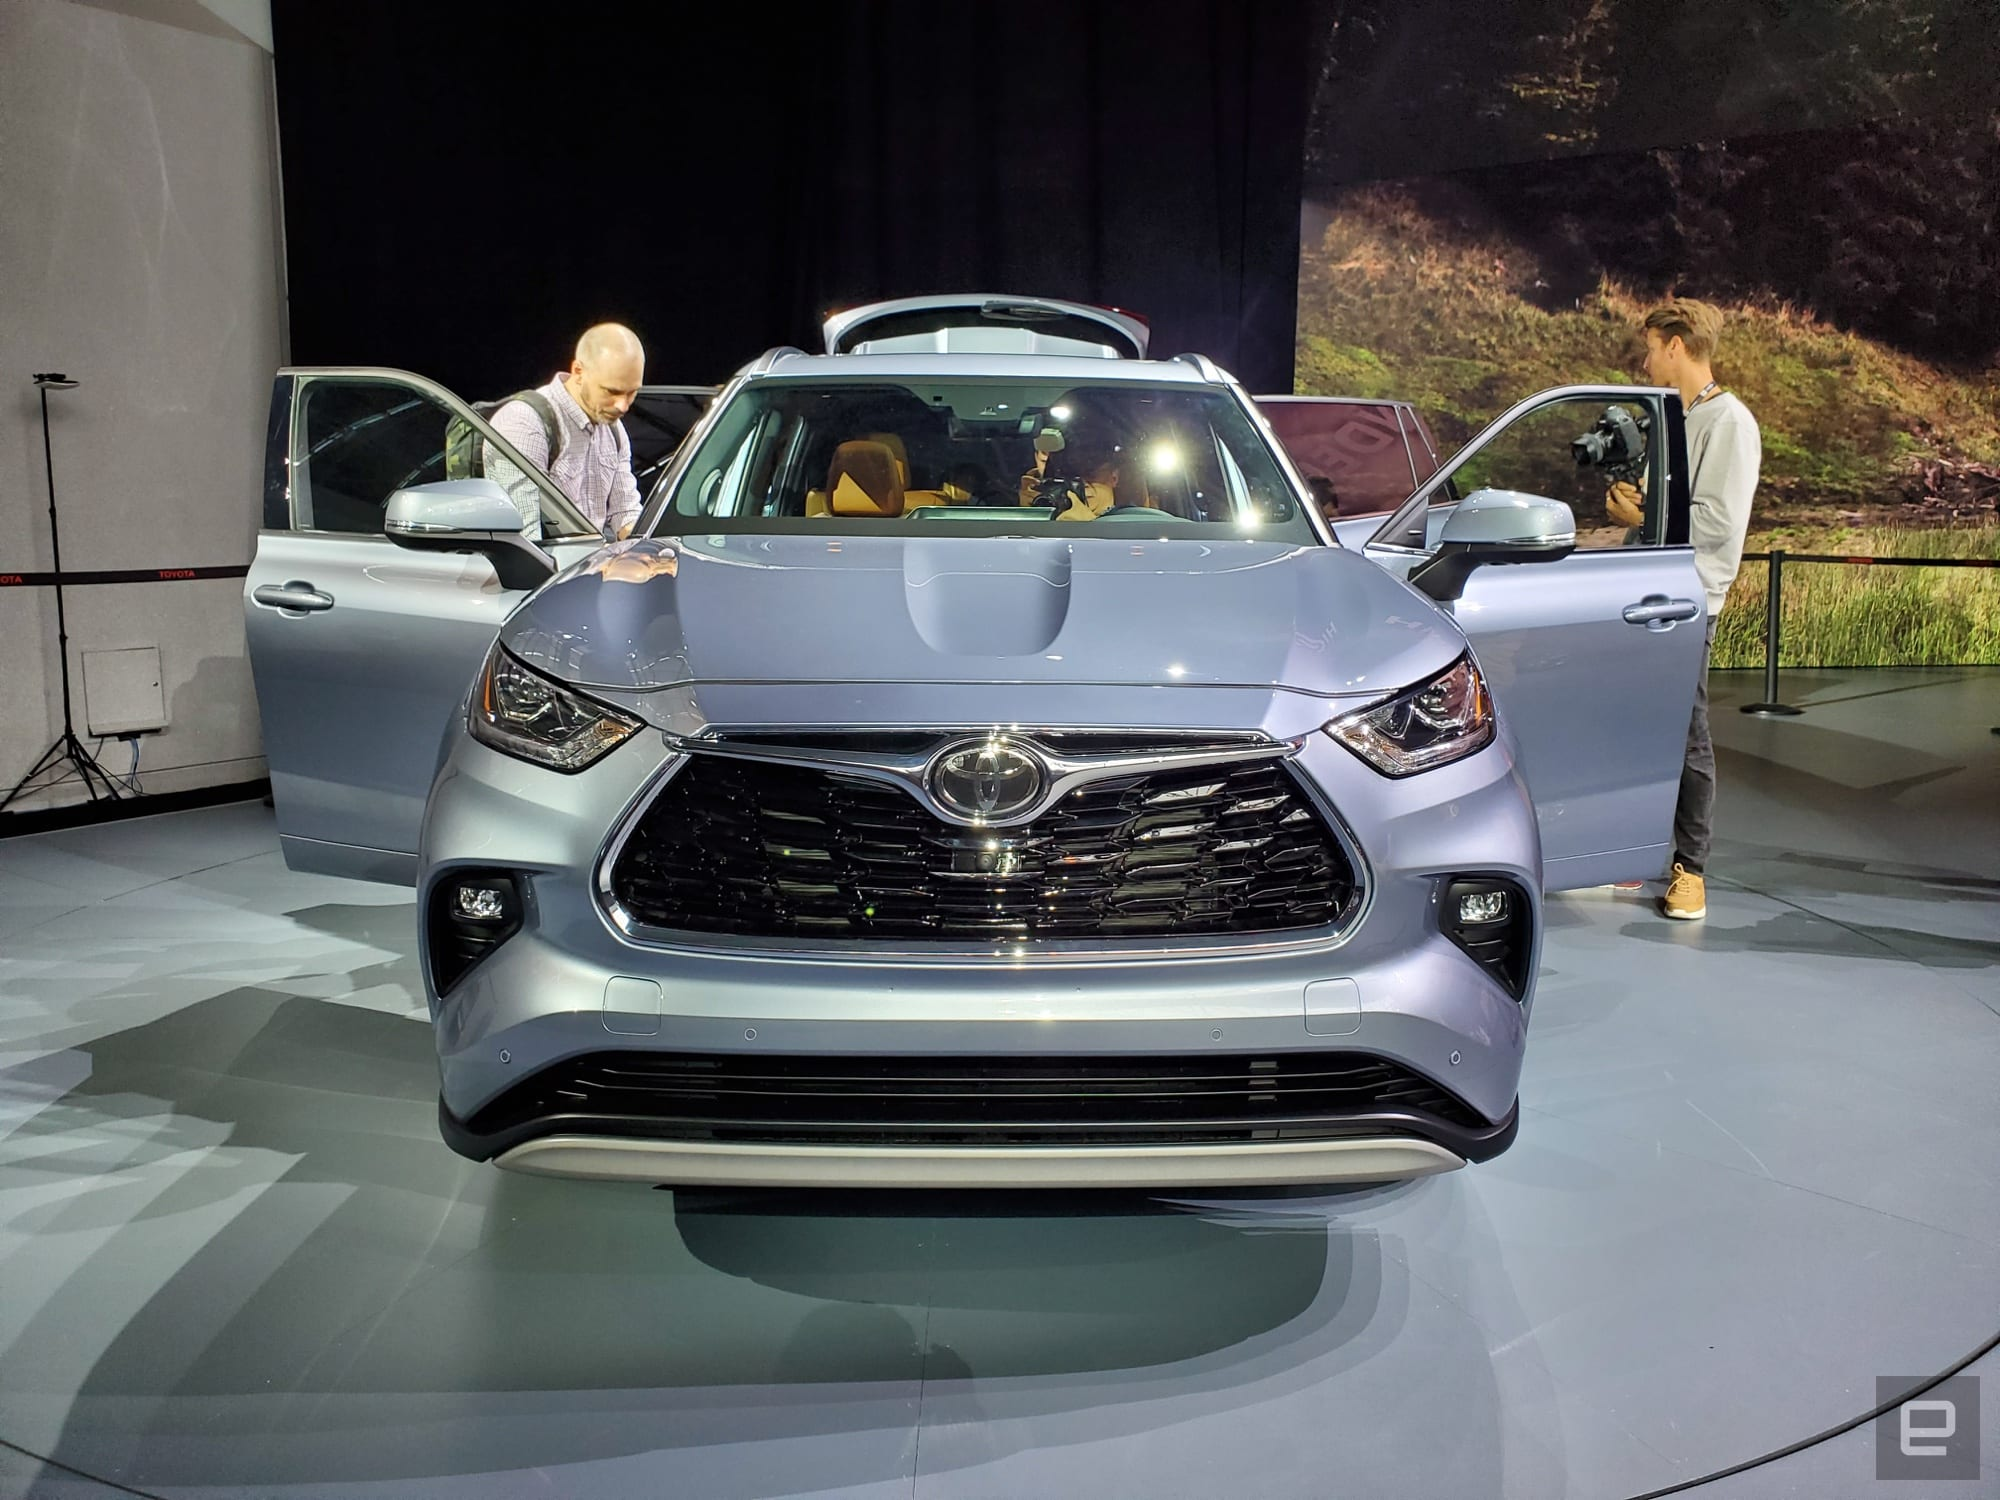 Toyota S 2020 Highlander Approaches The Pinnacle Of Suv Practicality